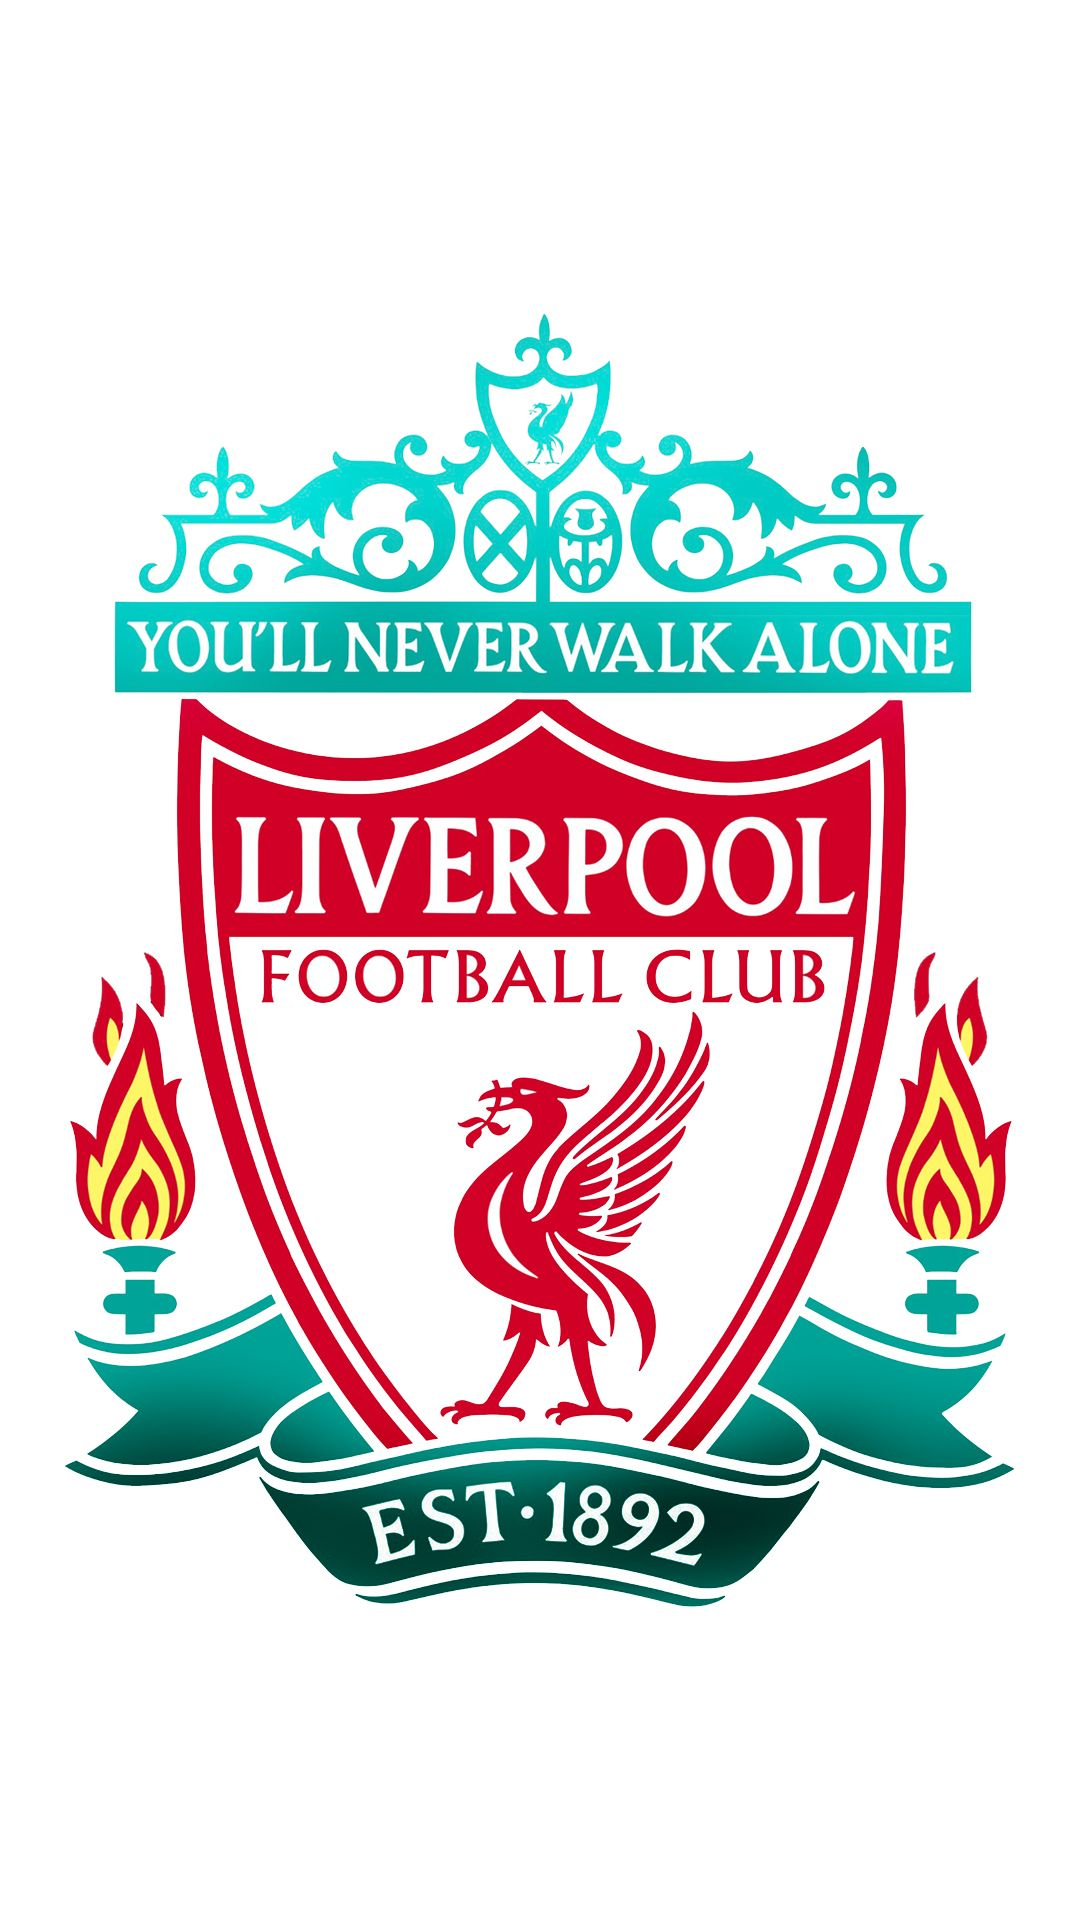 Liverpool fc wallpaper 1000 goals - Liverpool Football Club Wallpapers And Images Wallpapers Download Wallpaper Pinterest Liverpool Football Club Hd Desktop And Wallpaper